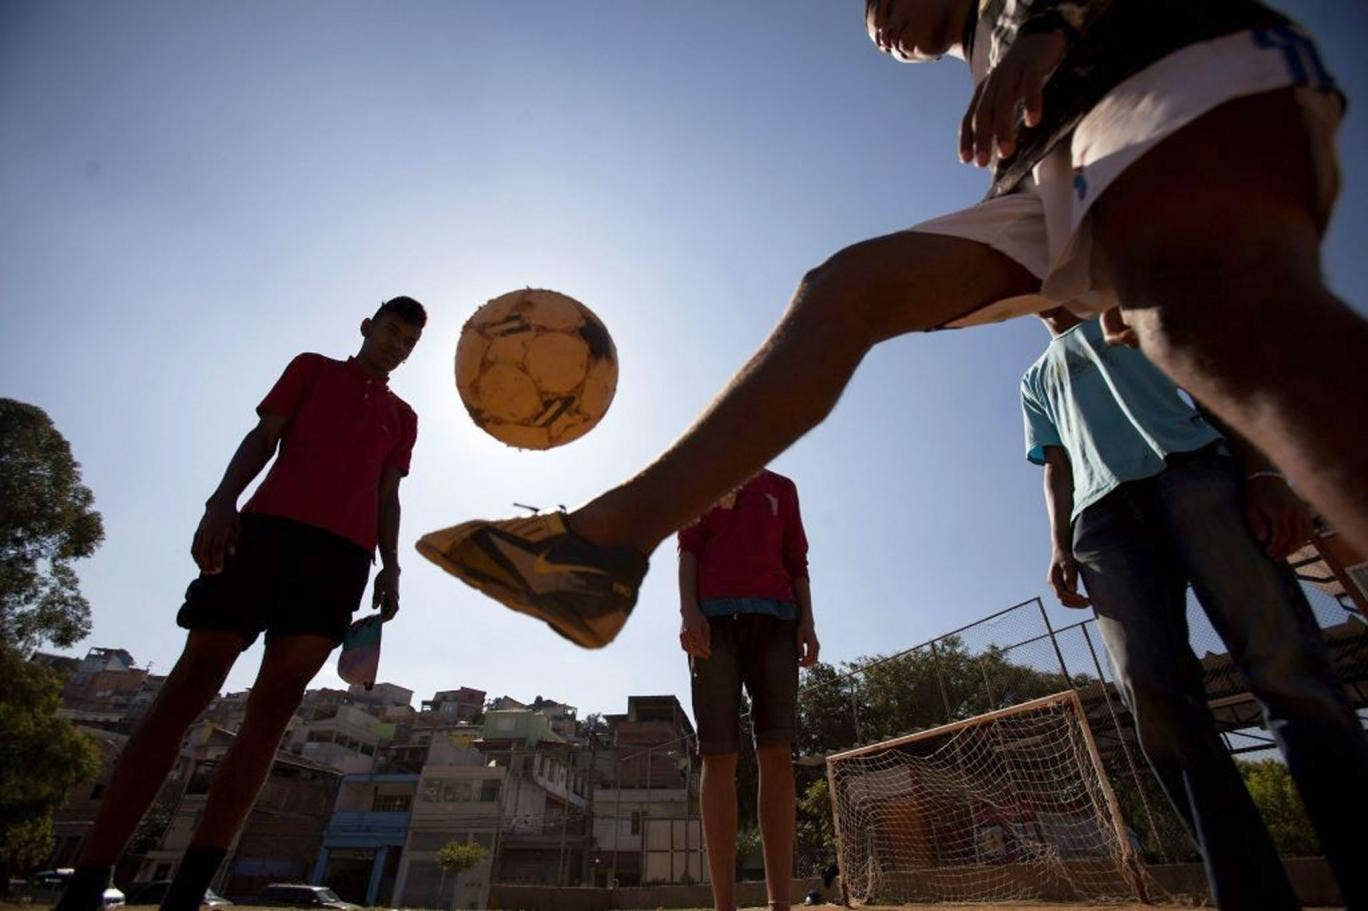 Nearly time for kick off: Young Brazil fans playing football on the outskirts of Sao Paulo